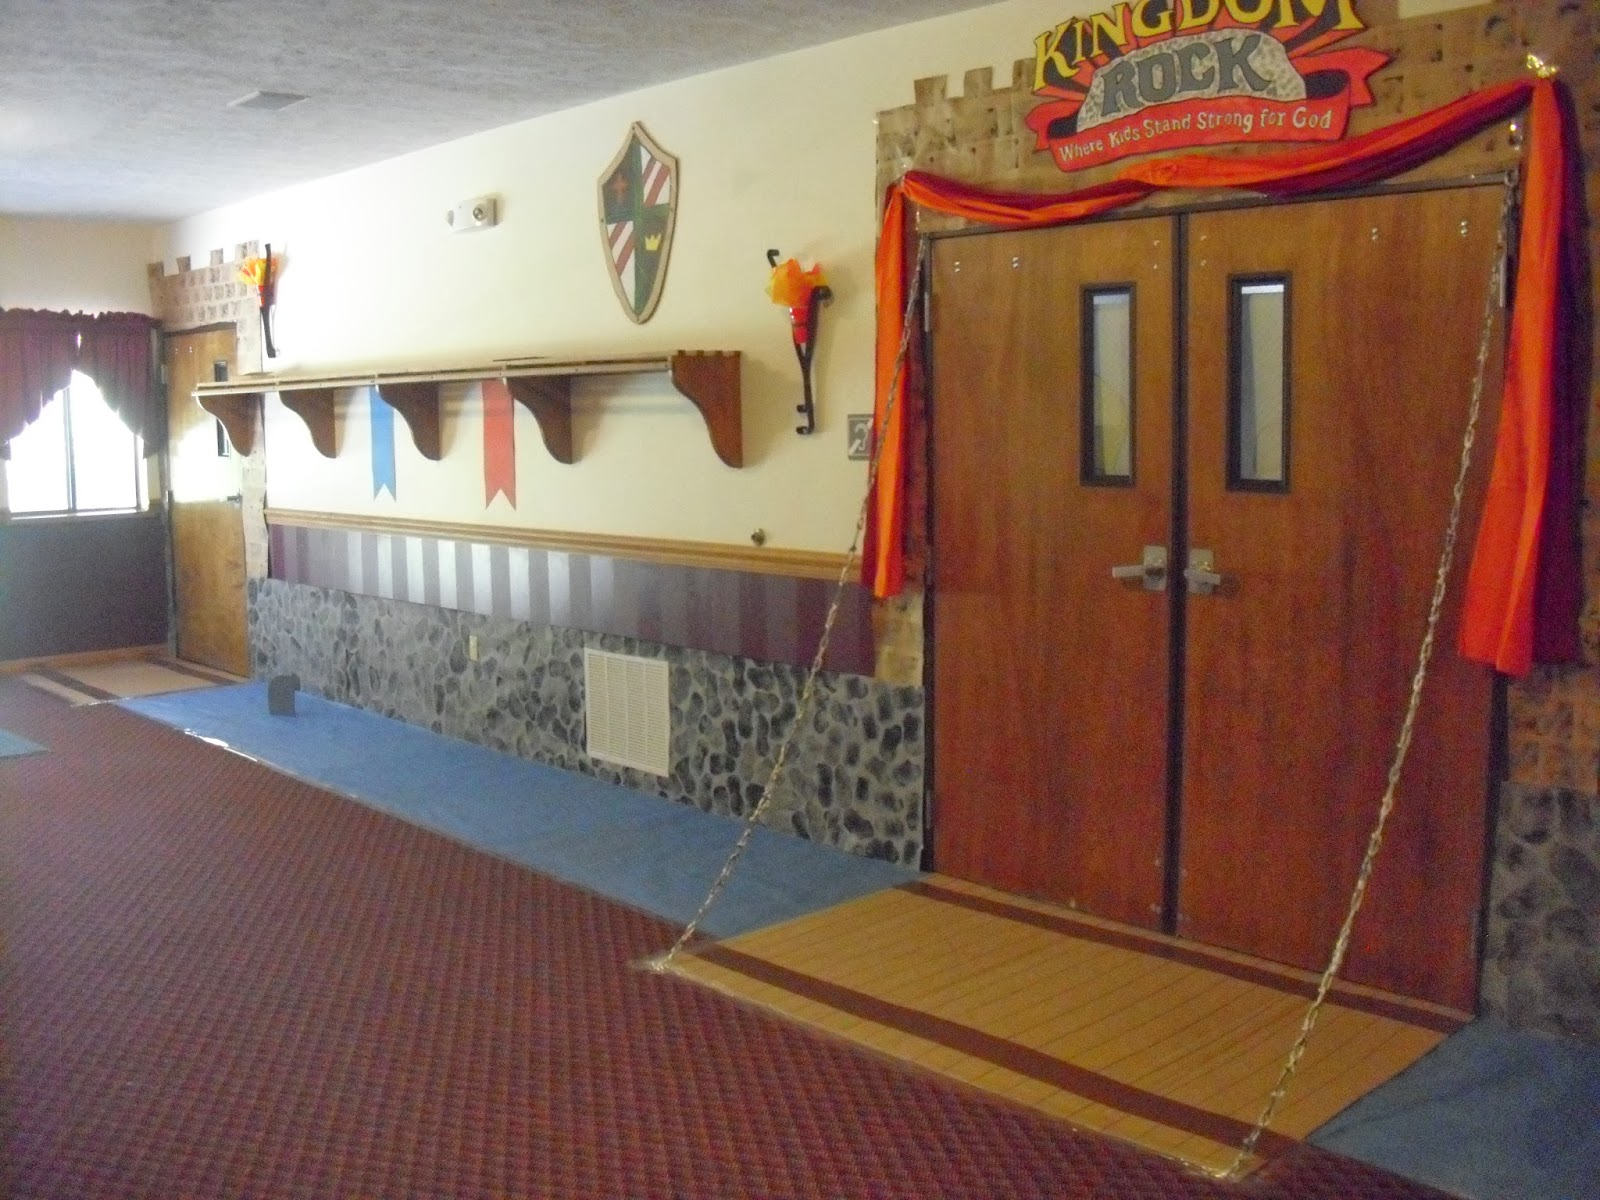 mixingitup vacation bible school ideas for medieval and